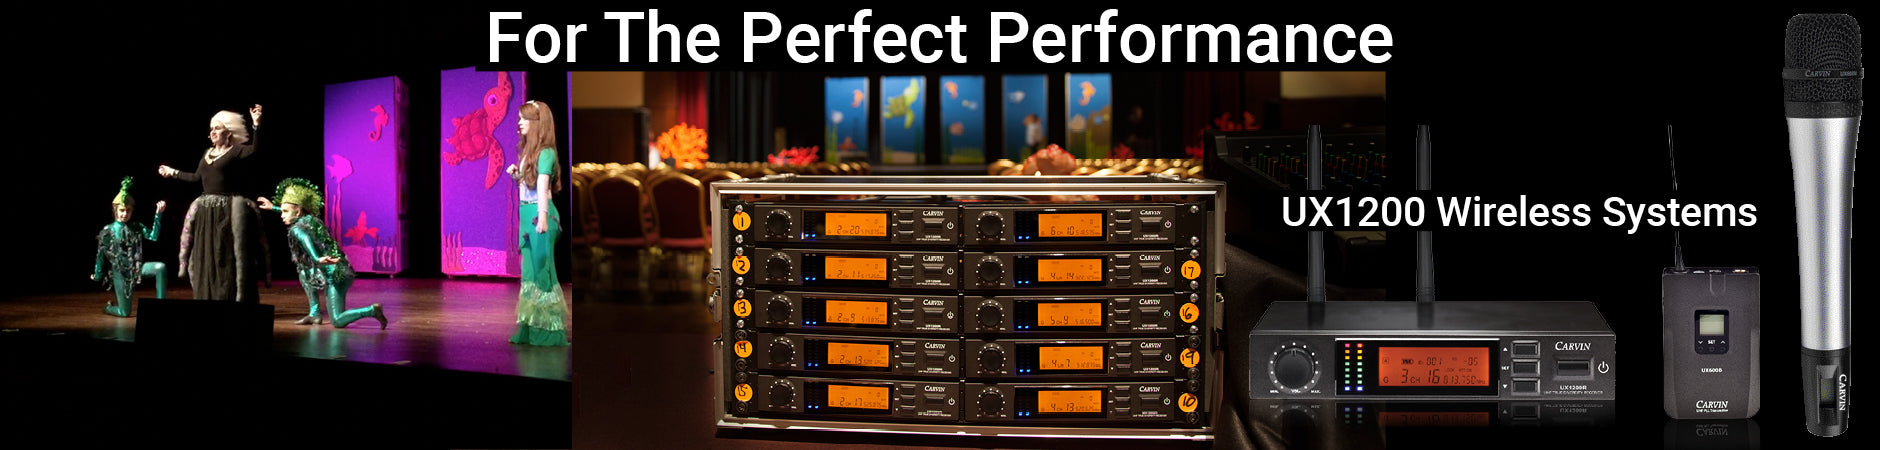 ux1200 wireless systems give the perfect performance